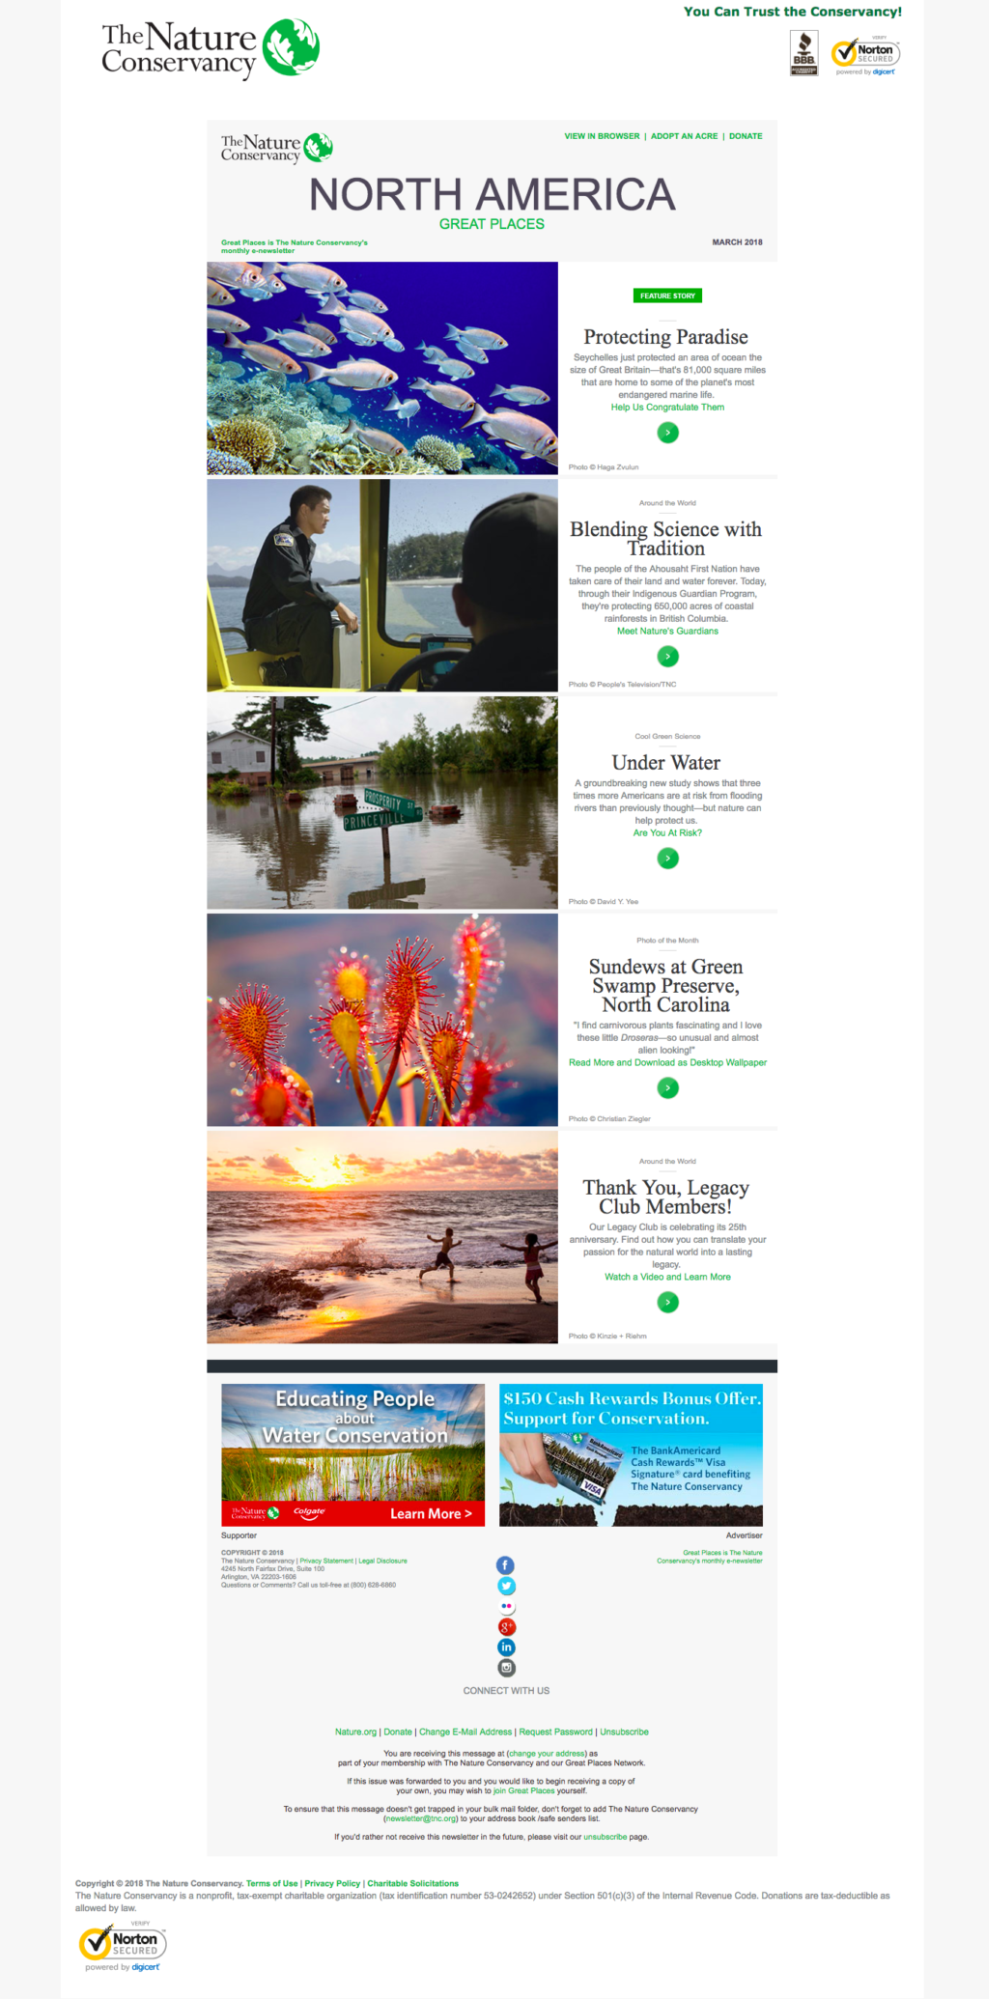 Email campaign by the Nature Conservancy